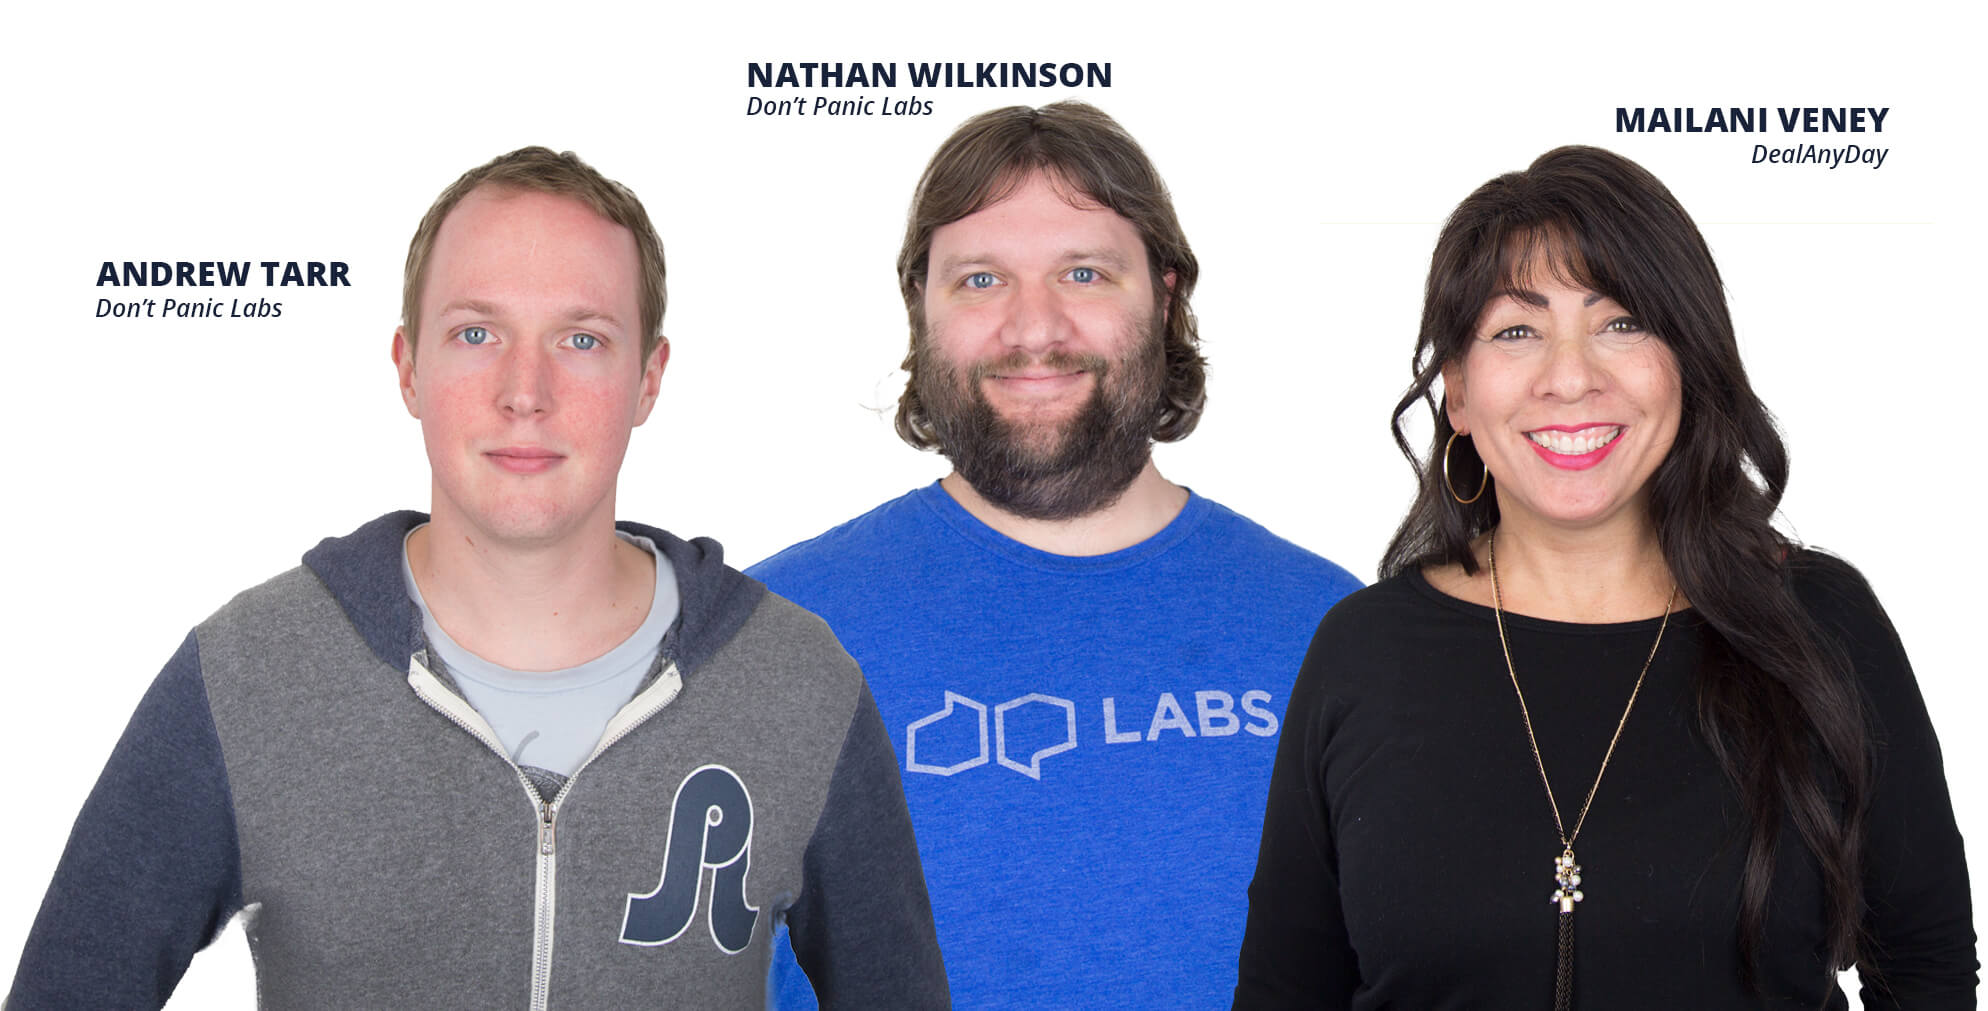 Andrew Tarr and Nathan Wilkinson of Don't Panic Labs, and Mailani Veney of DealAnyDay